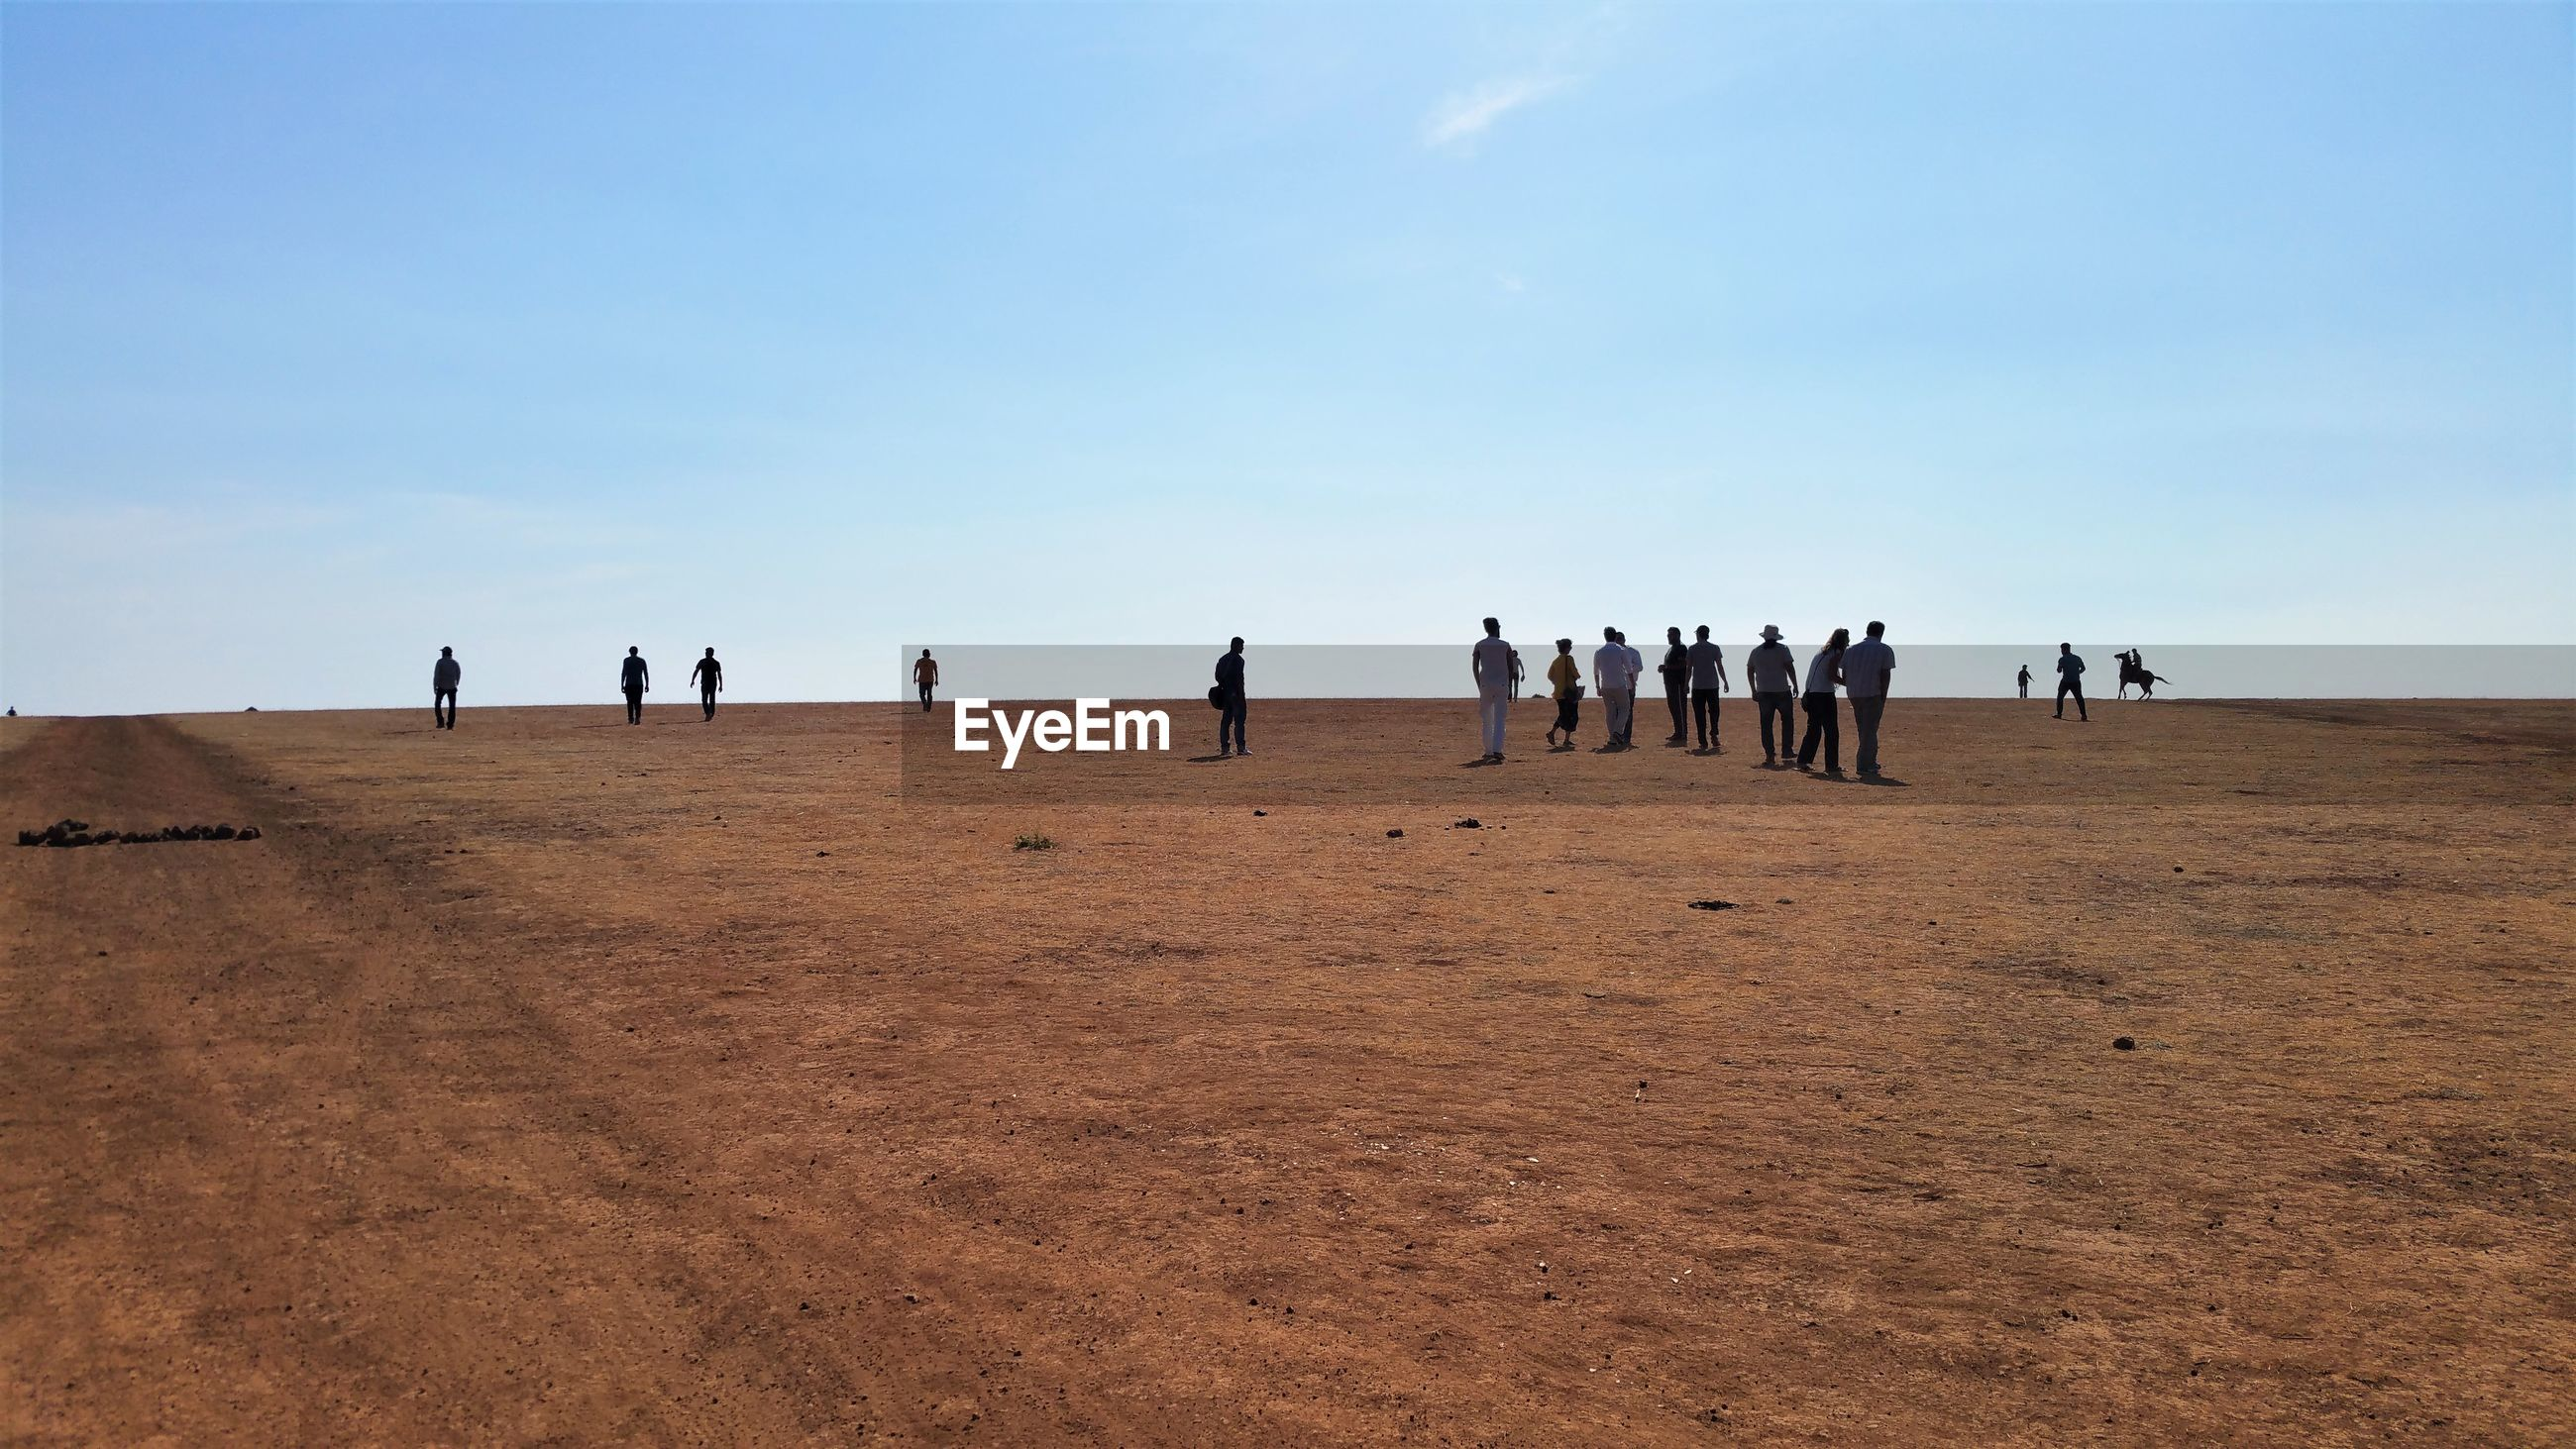 People standing on sand at desert against sky during sunny day